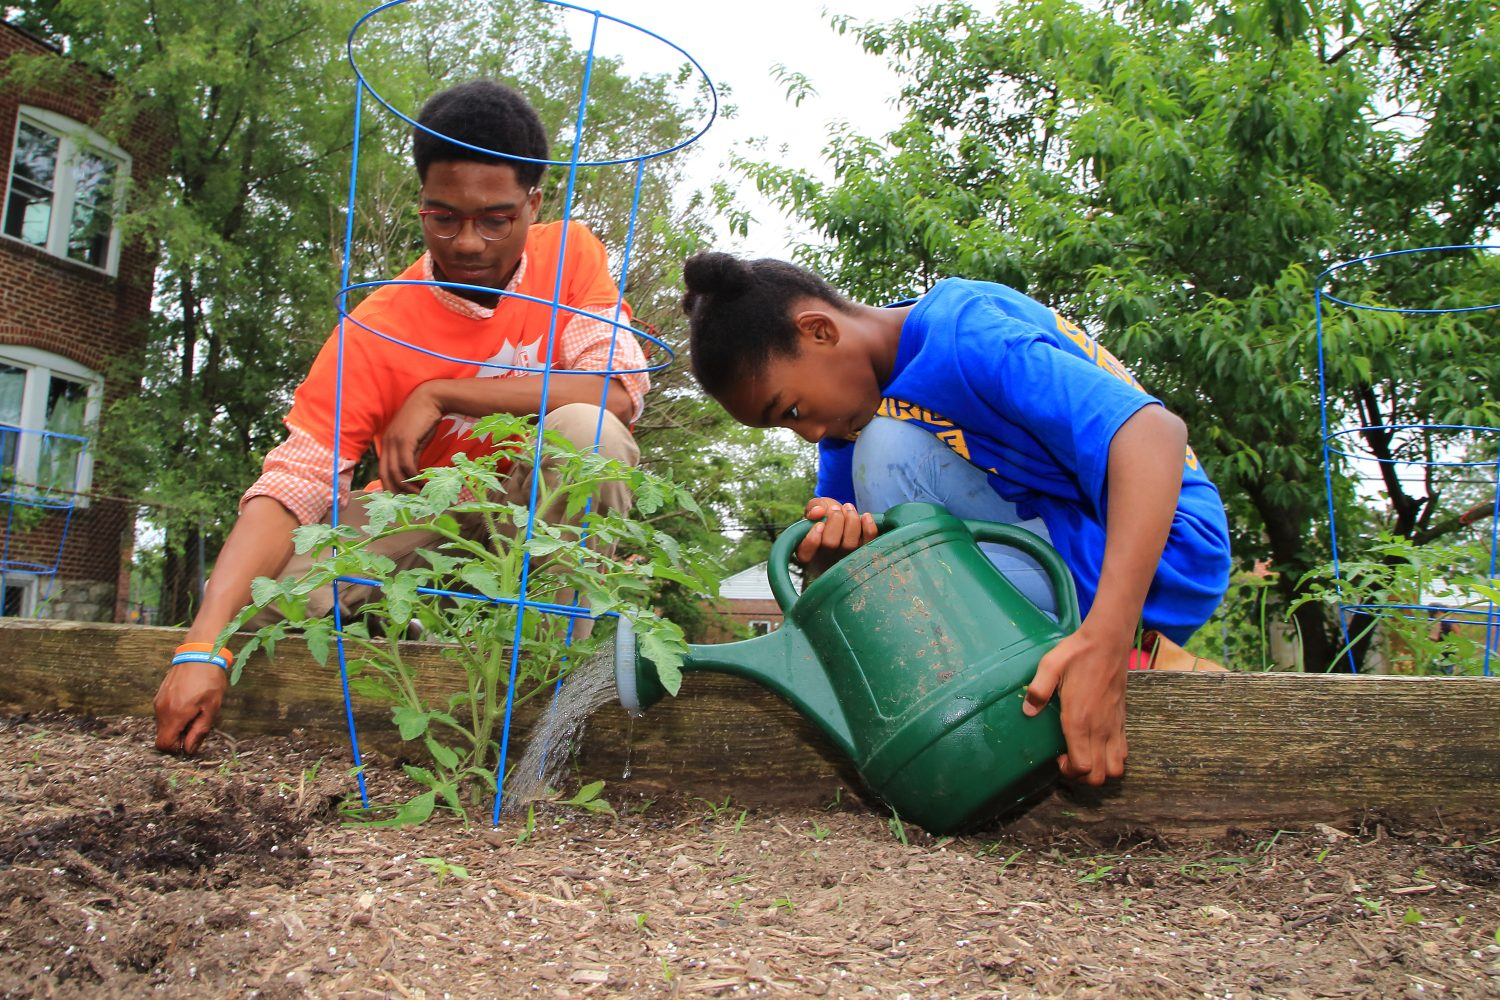 Vacant lots sponge up stormwater, produce community benefits